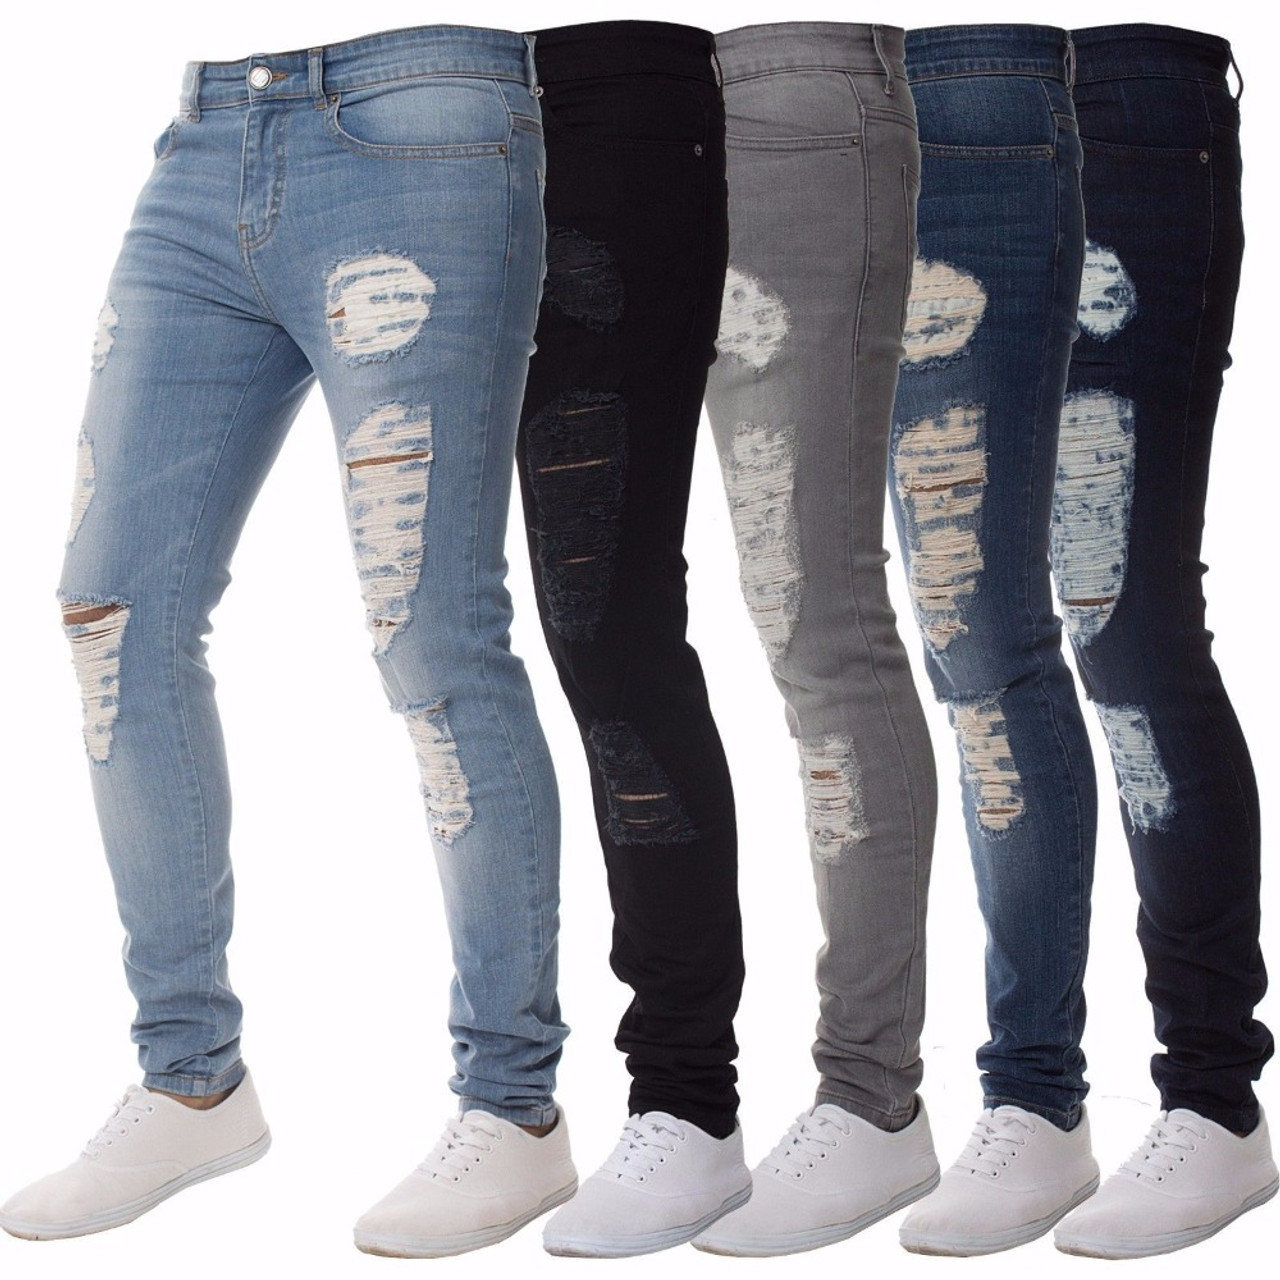 21181d2cb8a Mens Casual Skinny Jeans Pants Men Solid black ripped jeans men Ripped  Beggar Jeans With Knee ...